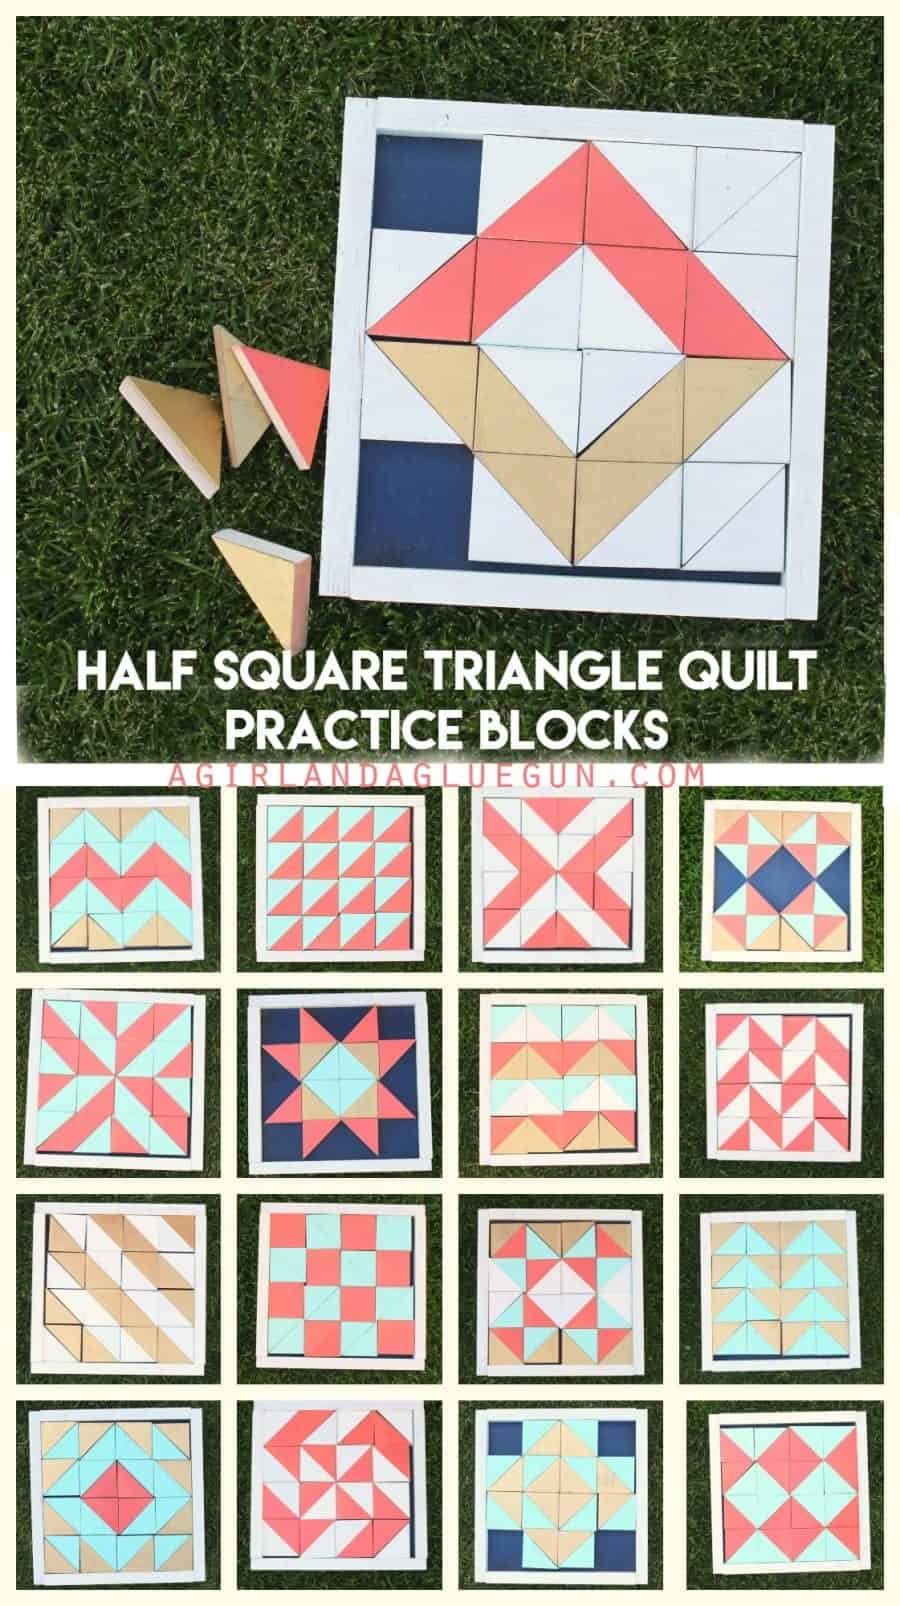 half square triangle quilt practice blocks